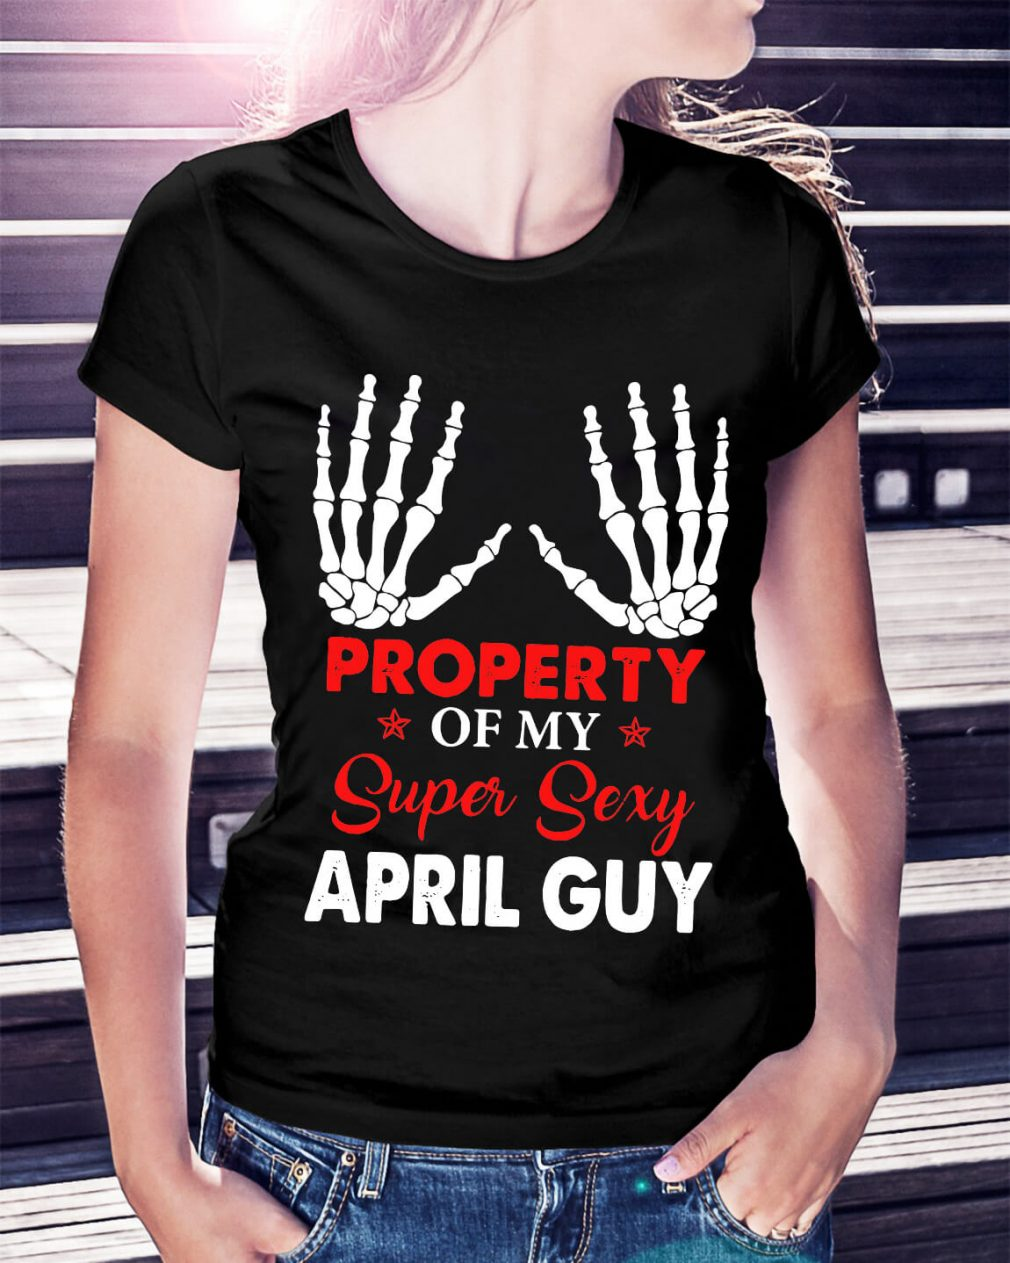 Property of my super sexy April guy shirt